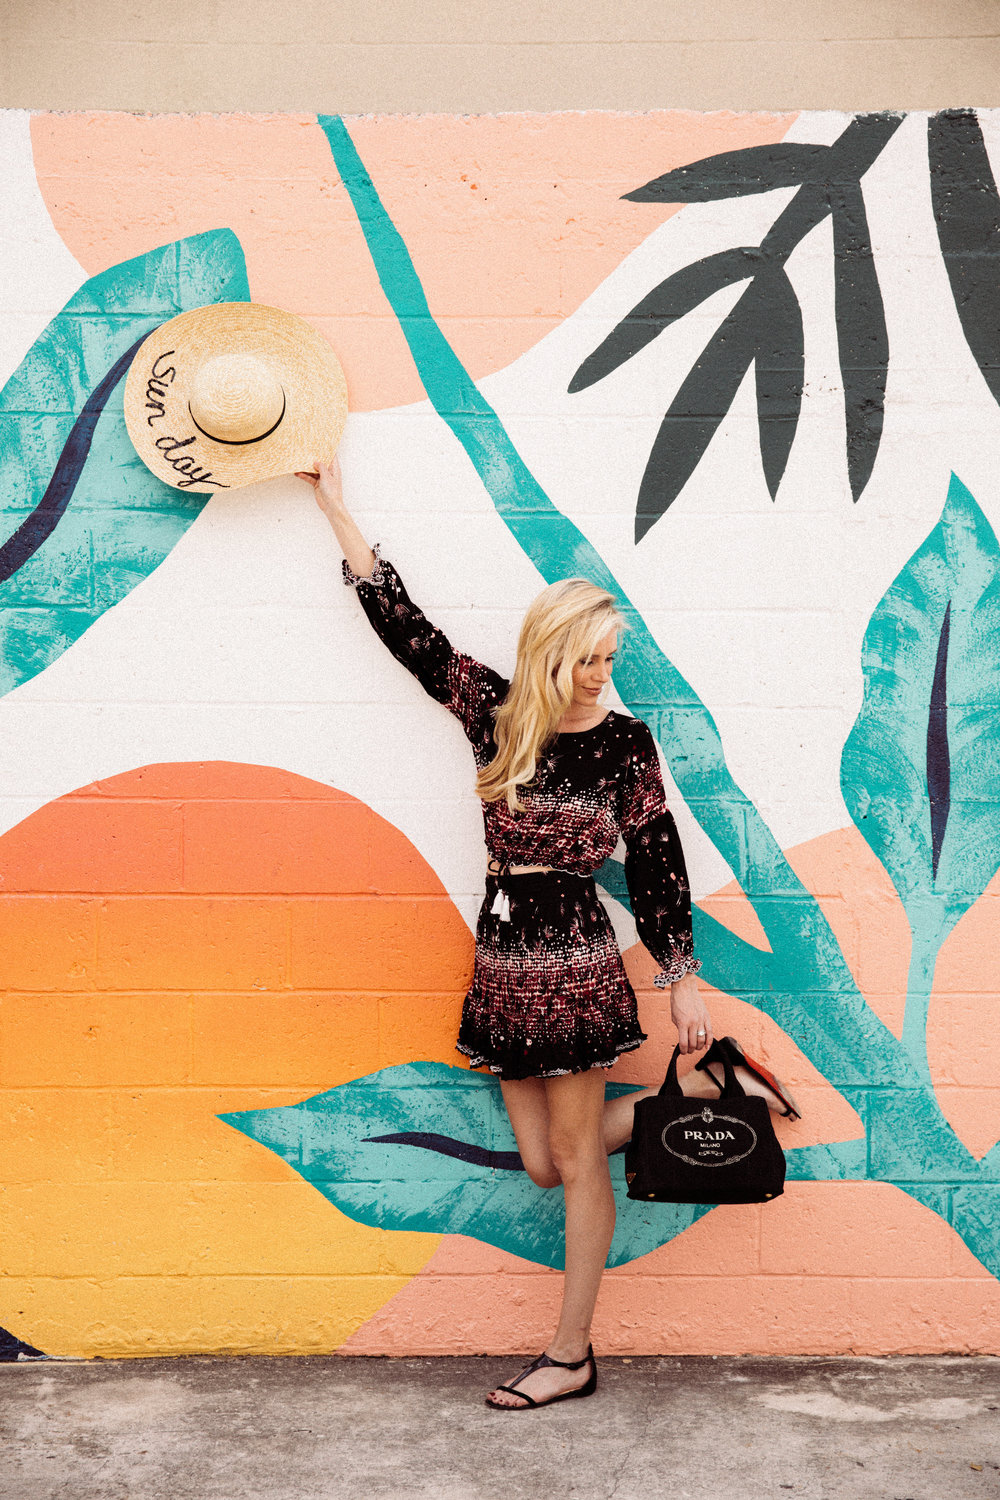 Chic Meets West | Krista Glover | Retreating To Resort: Packing tips and vacay essentials for your winter getaway.